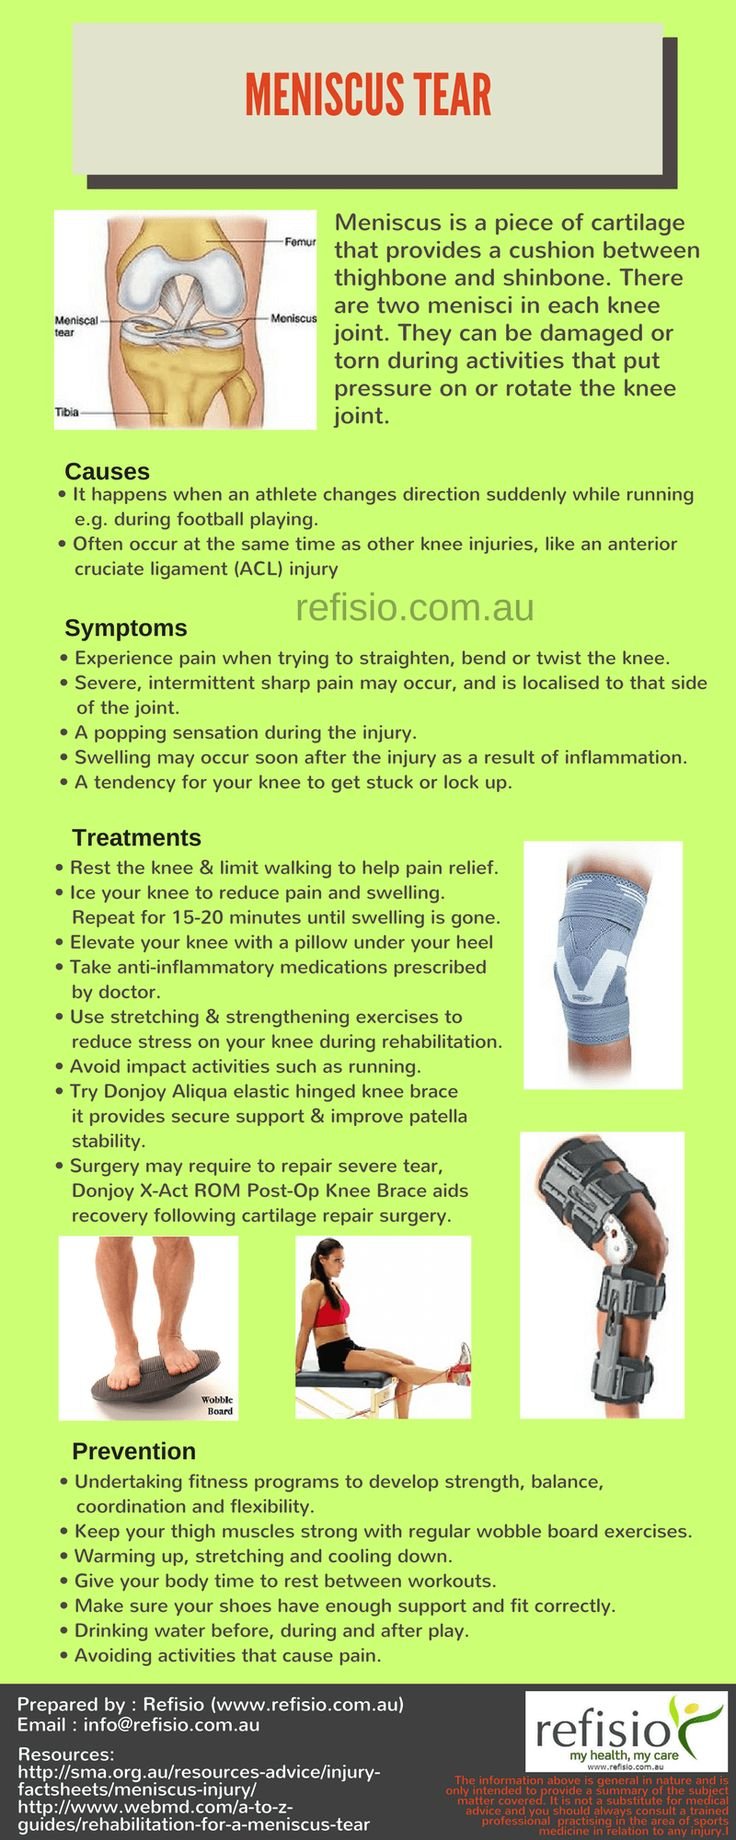 Recommended rehab products for Meniscus Tear treatment: Aircast Knee Cryo/ Cuff - to ice and reduce inflammation of the knee. Donjoy X-Act ROM Post-Op Knee Brace - designed to aid recovery following knee cartilage repair. Donjoy Aliqua Elastic Hinged Knee Brace - designed for the treatment of meniscal injuries and post-operative support after meniscectomy as it can actively help the recovery process. Wobble Board - To mobilise the knee and kneecap joints, plus strengthe...